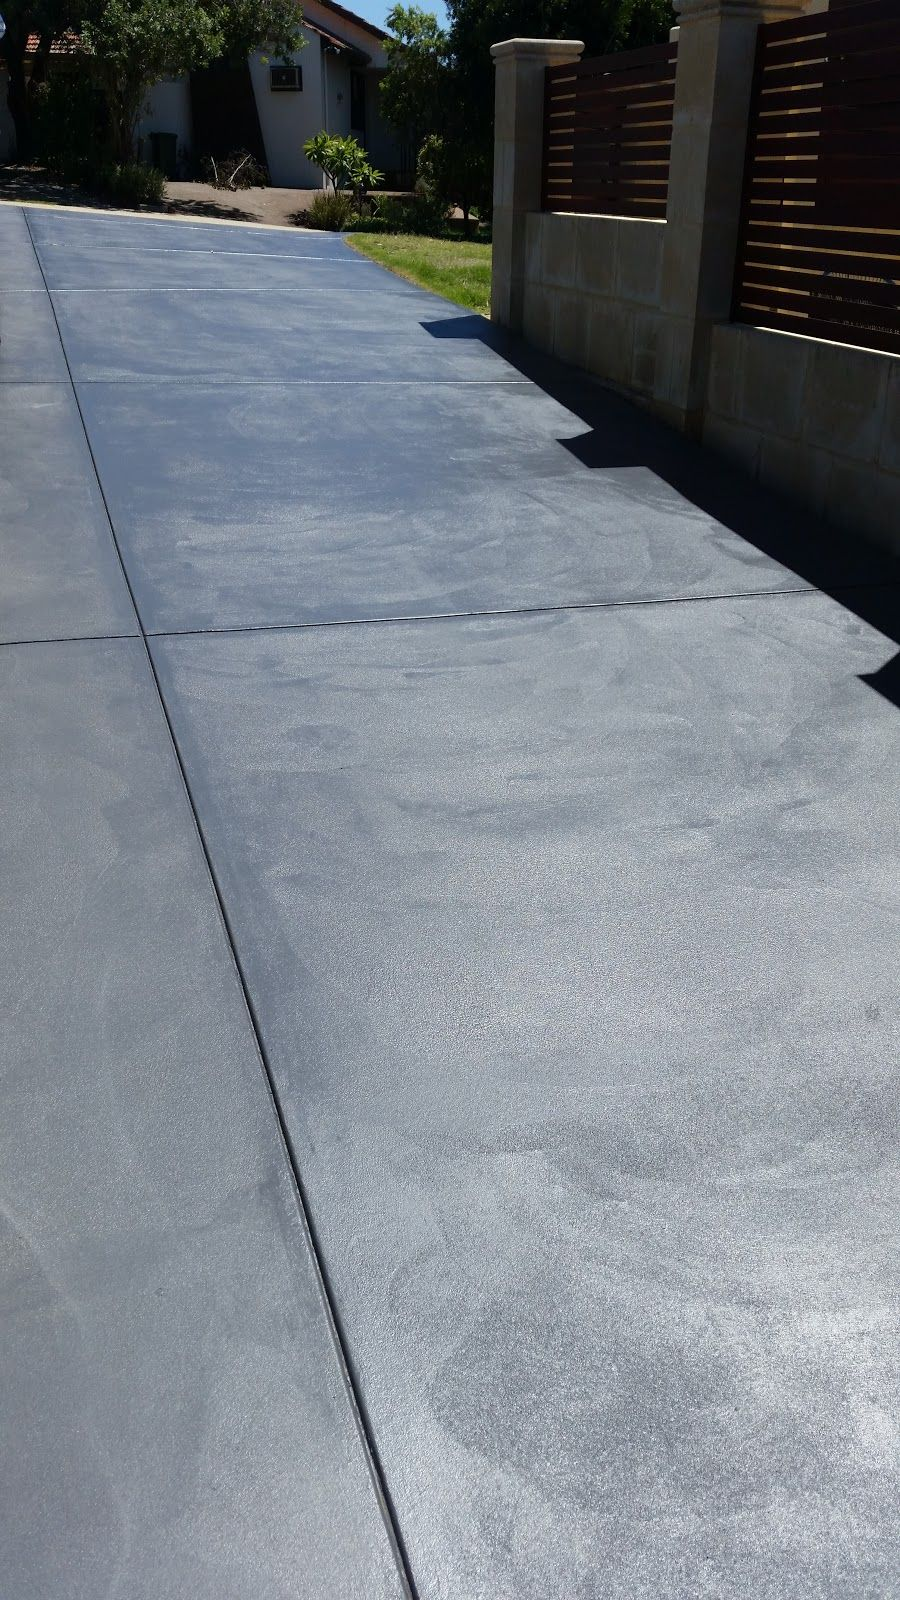 A quick and easy weekend diy on painting and sealing a concrete a quick and easy weekend diy on painting and sealing a concrete driveway solutioingenieria Gallery